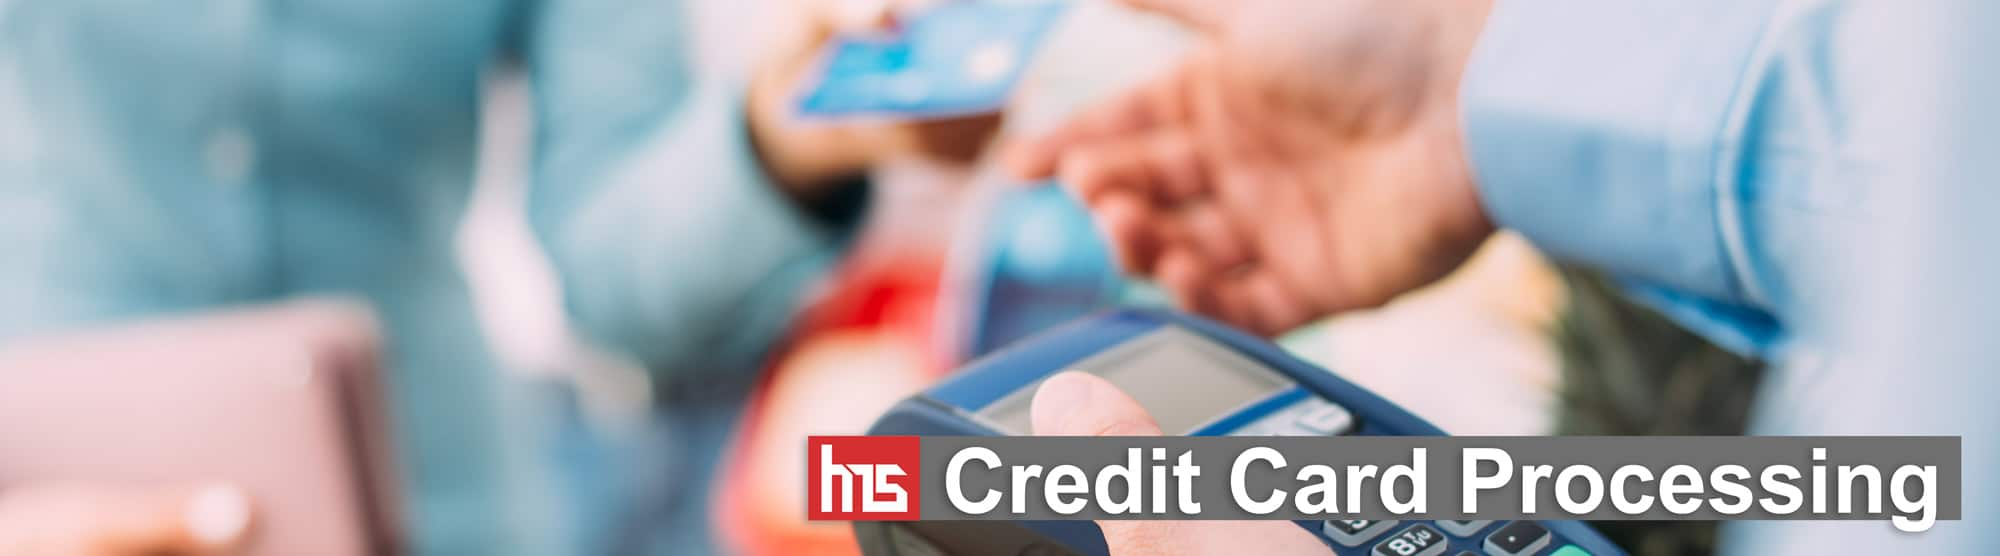 credit card processing banner